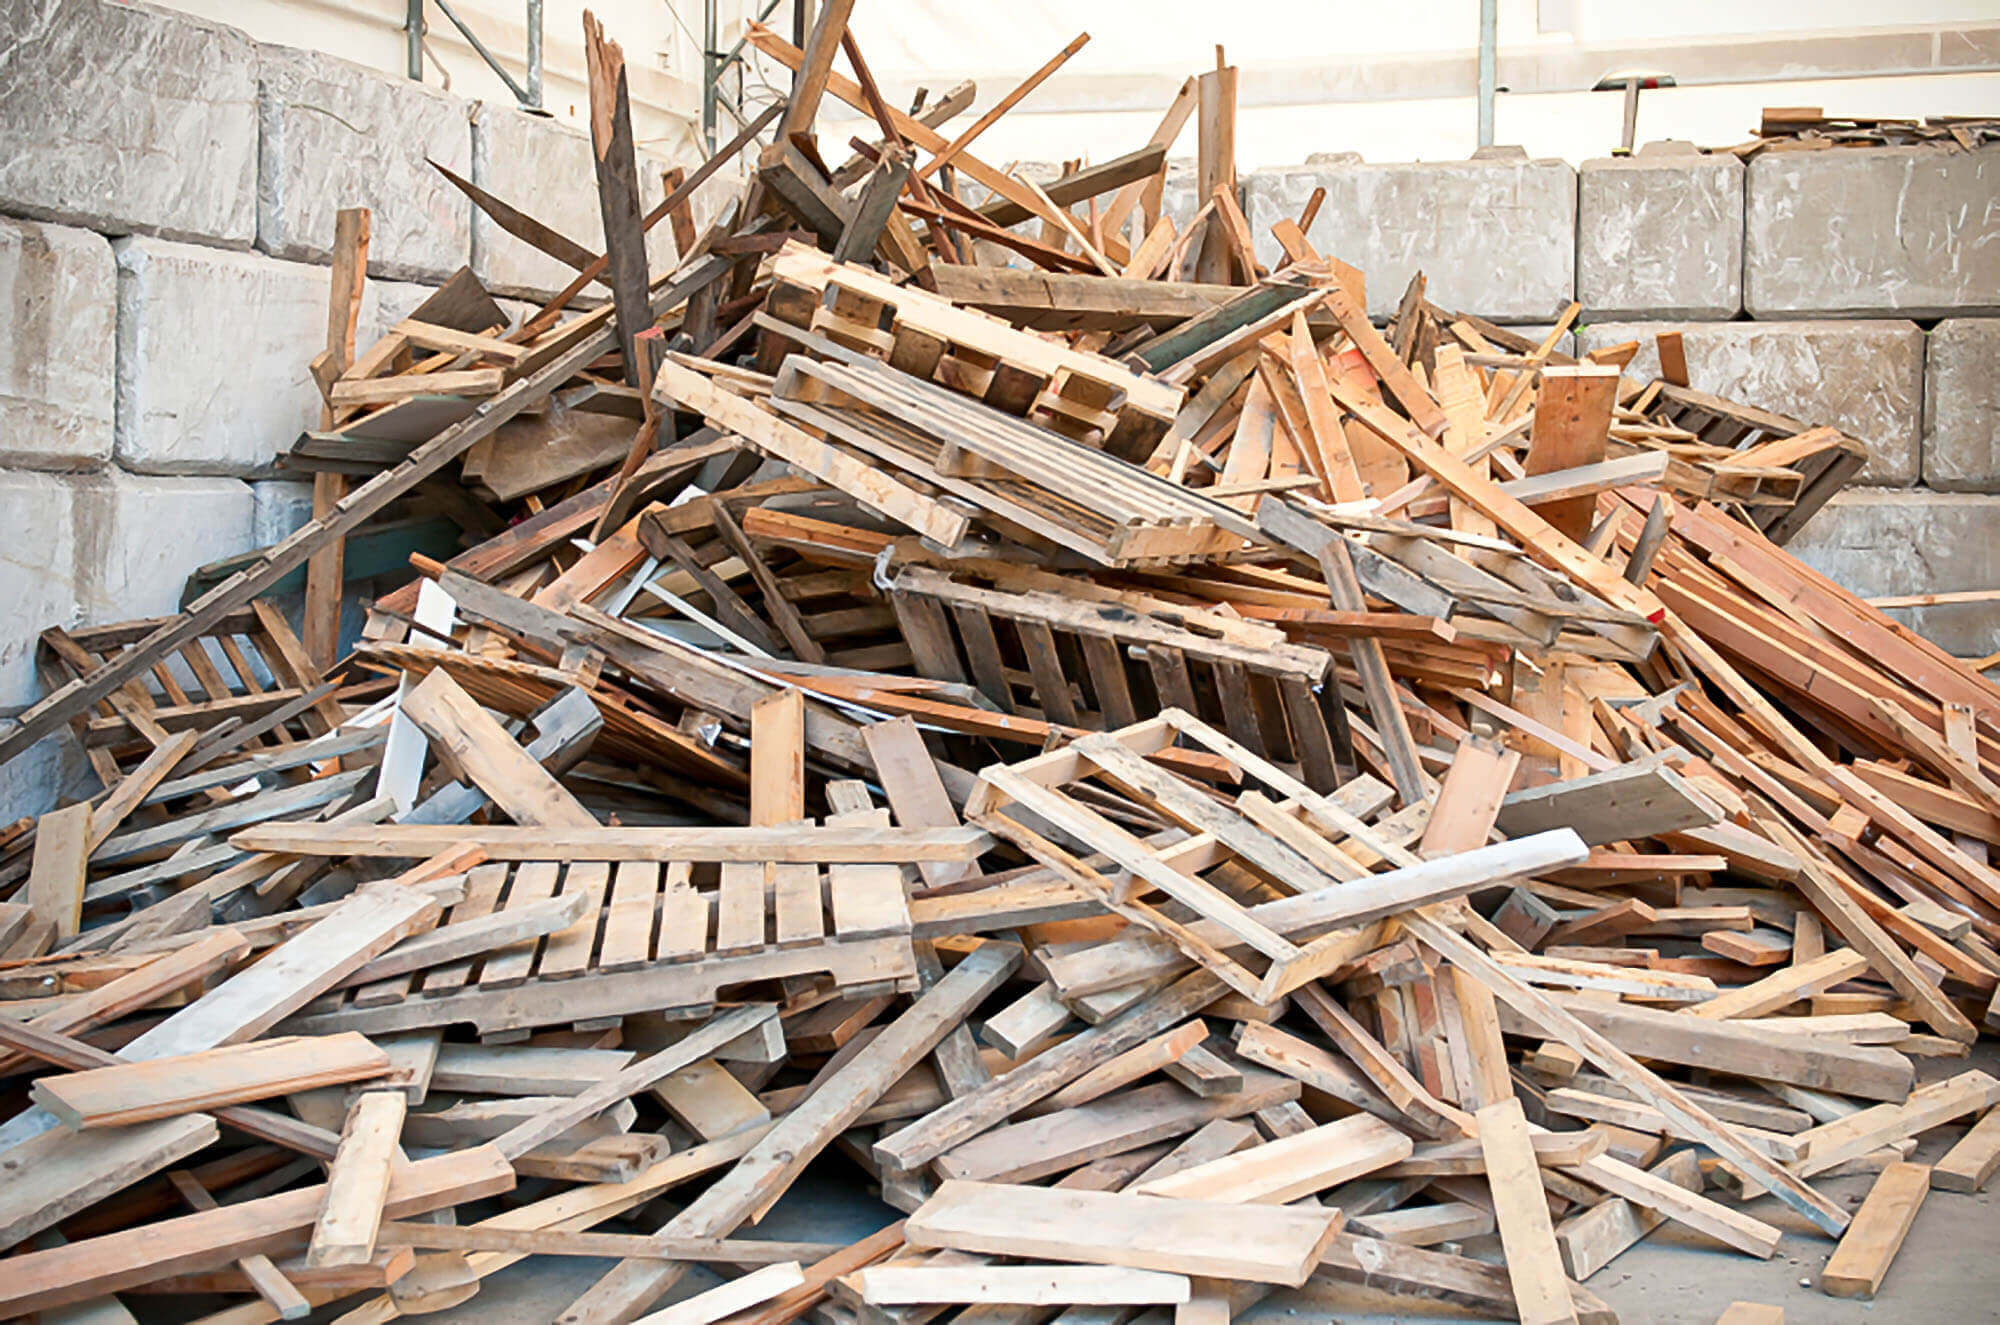 A pile of waste wood with wooden pallets and wooden furniture